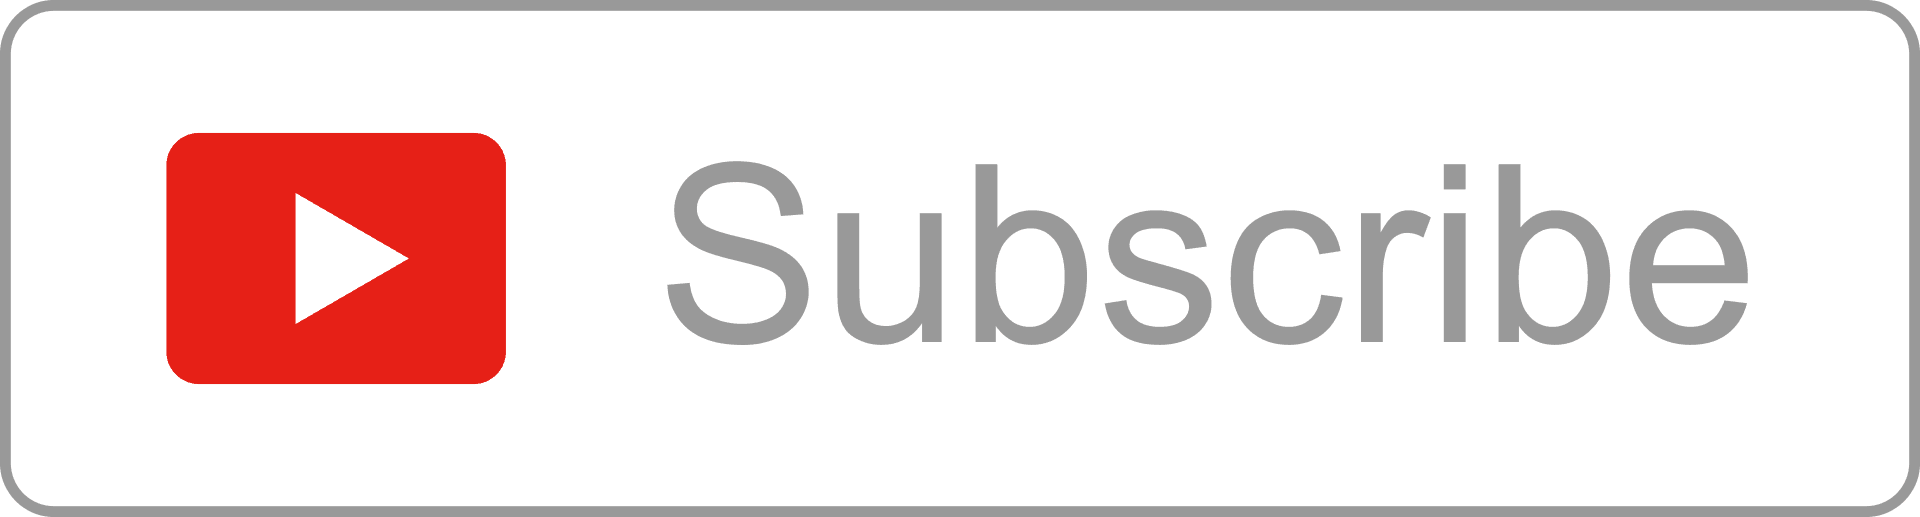 outline youtube subscribe button alfredocreates #33256